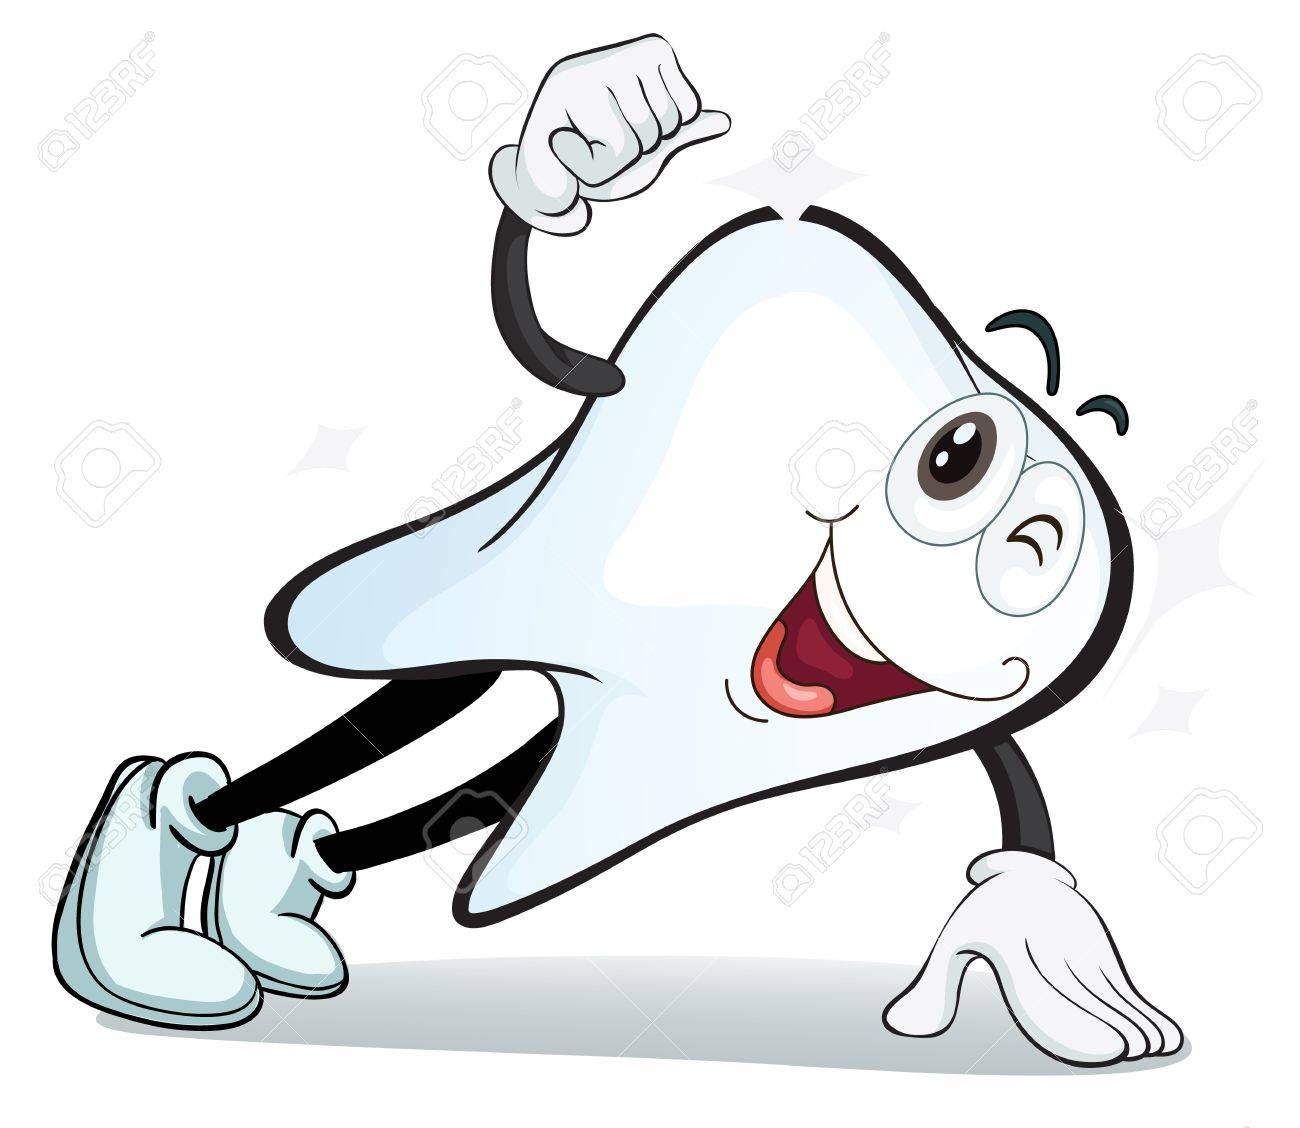 Illustration Of A Tooth On A White Background Royalty Free ...